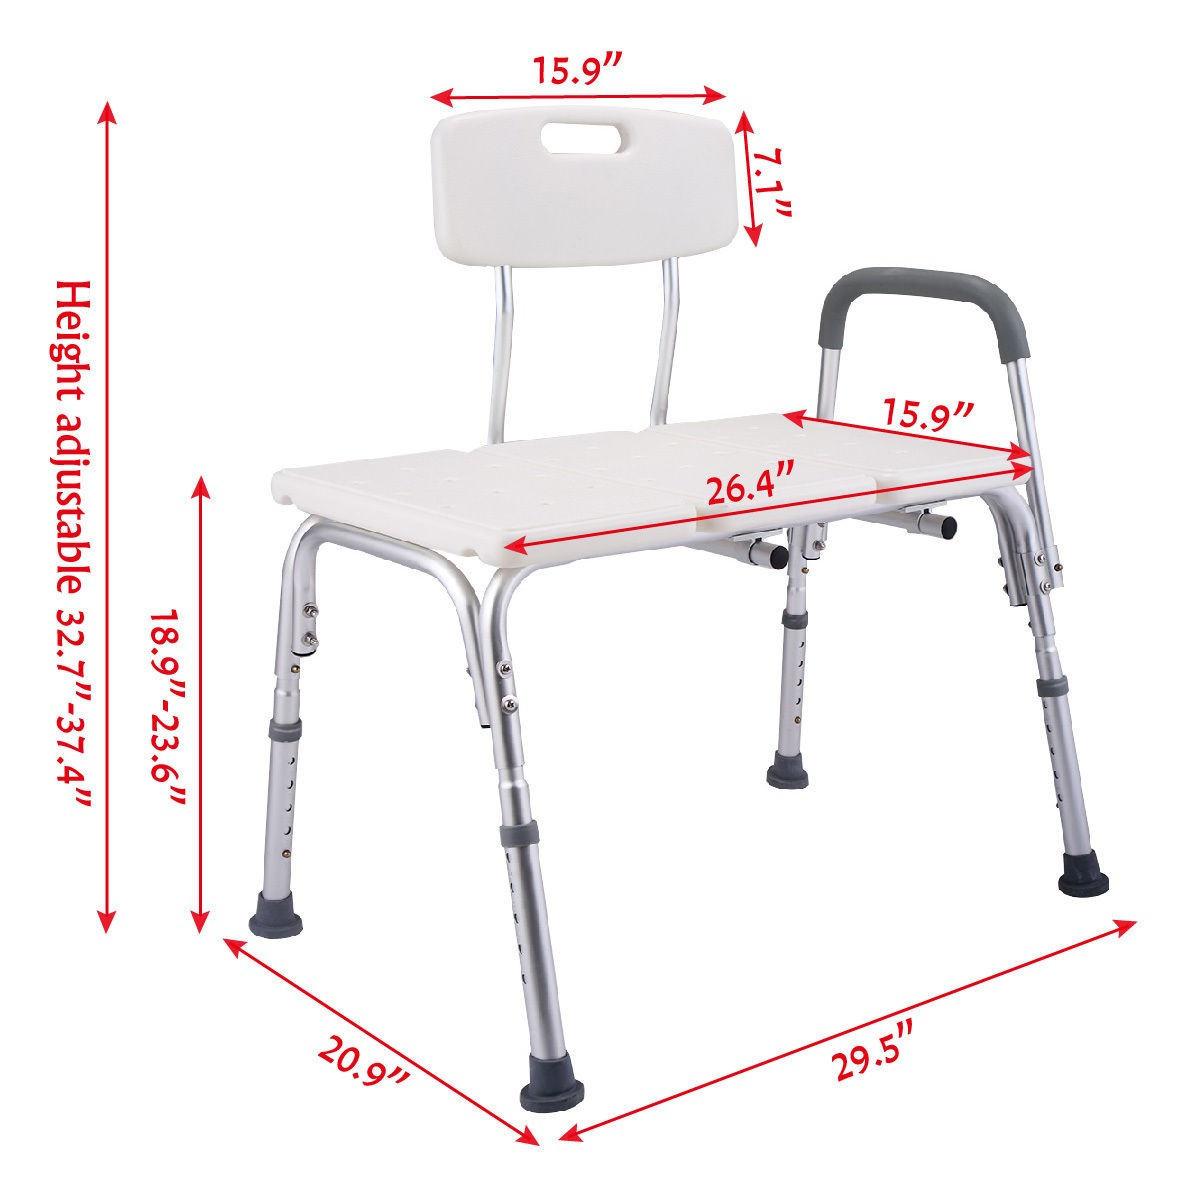 10 Height Adjustable Medical Shower Chair Bath Tub Bench